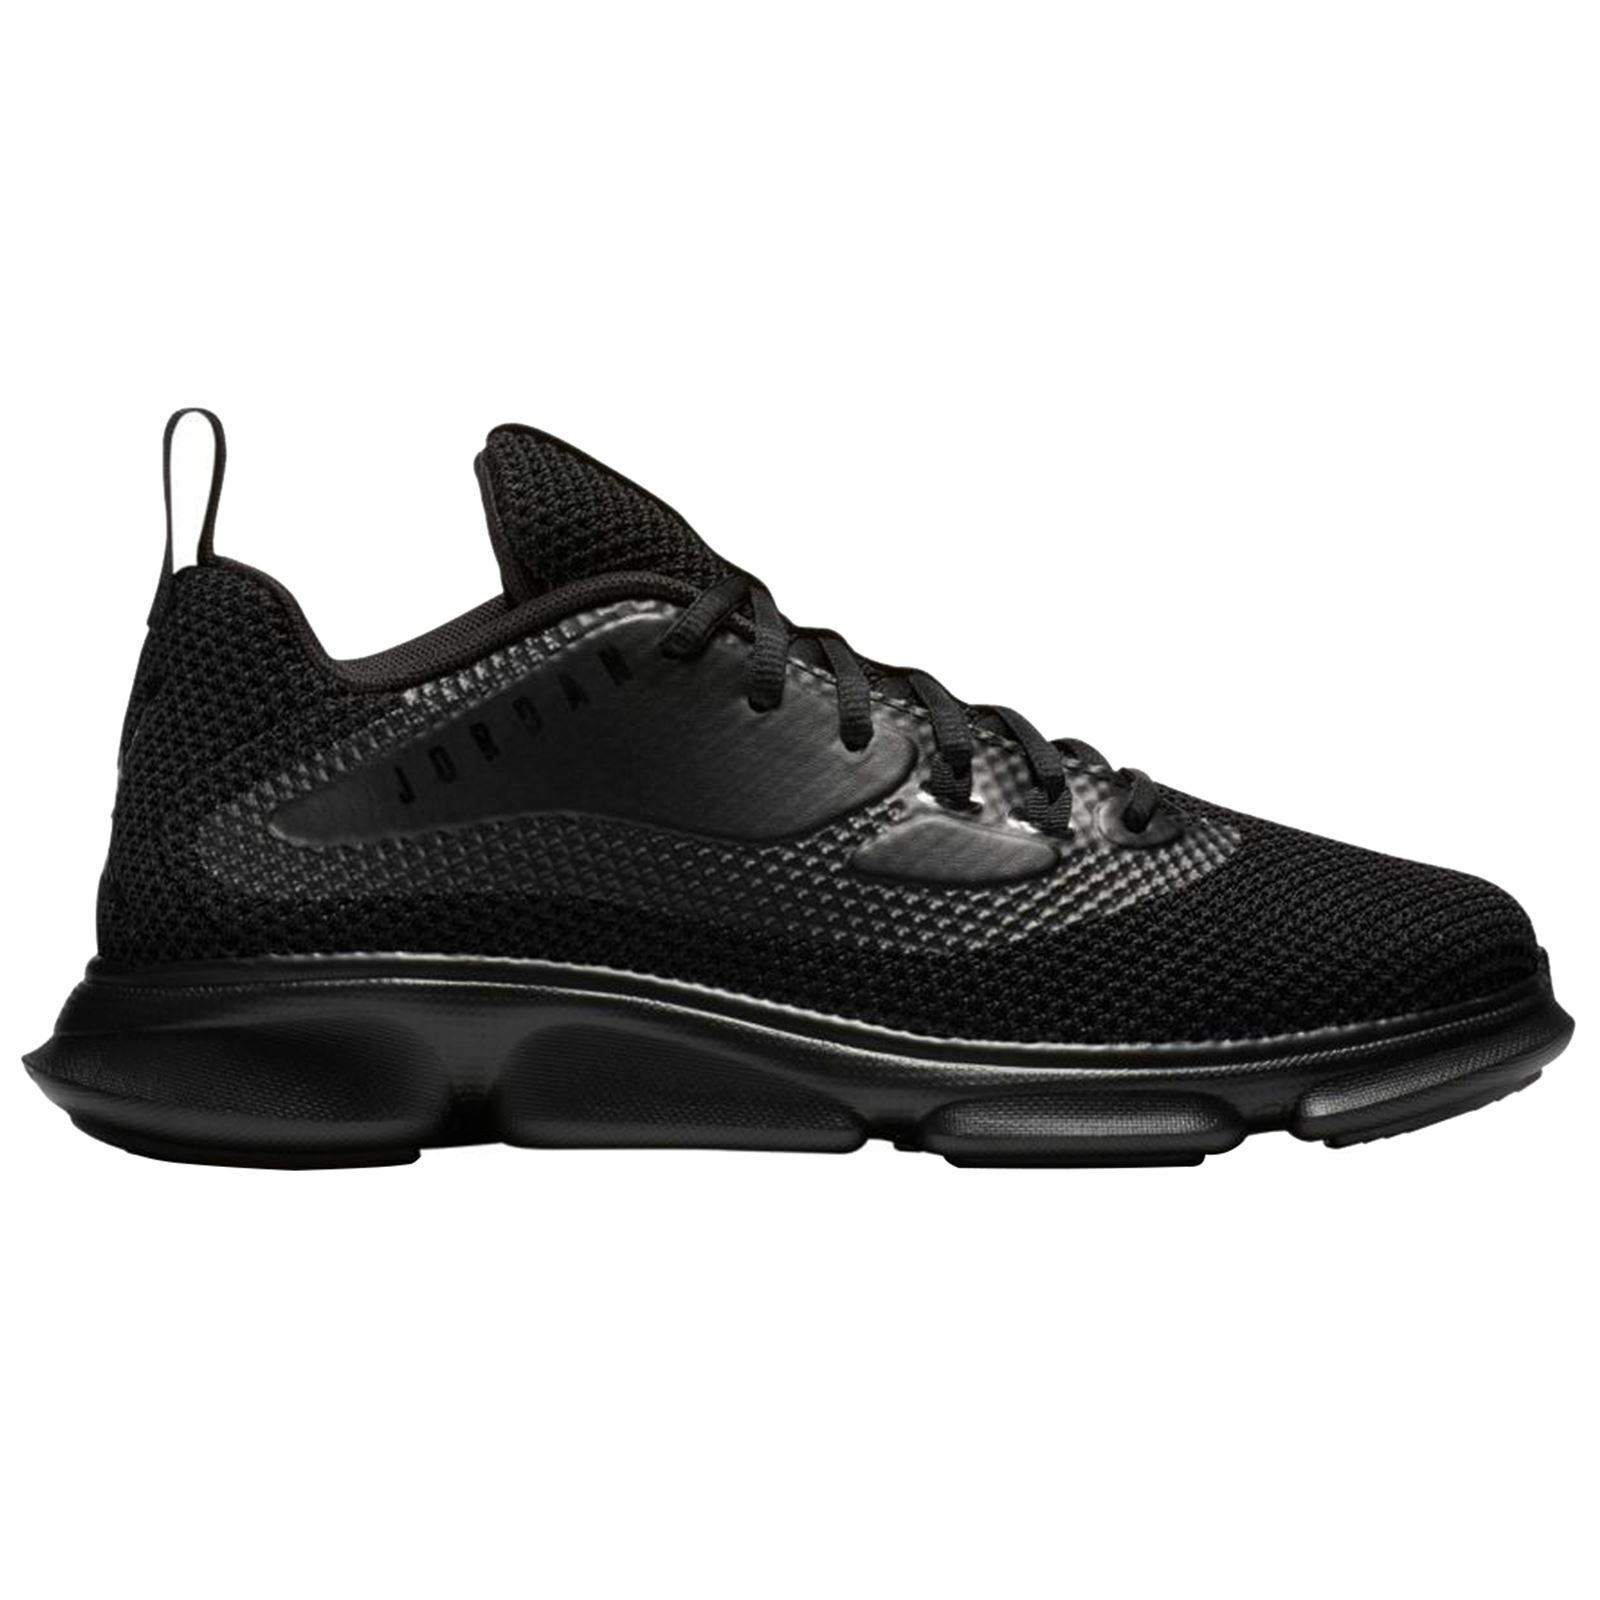 b060f65f19 Nike Jordan Impact Training Black Mens Mesh Lace-up Trainers ...